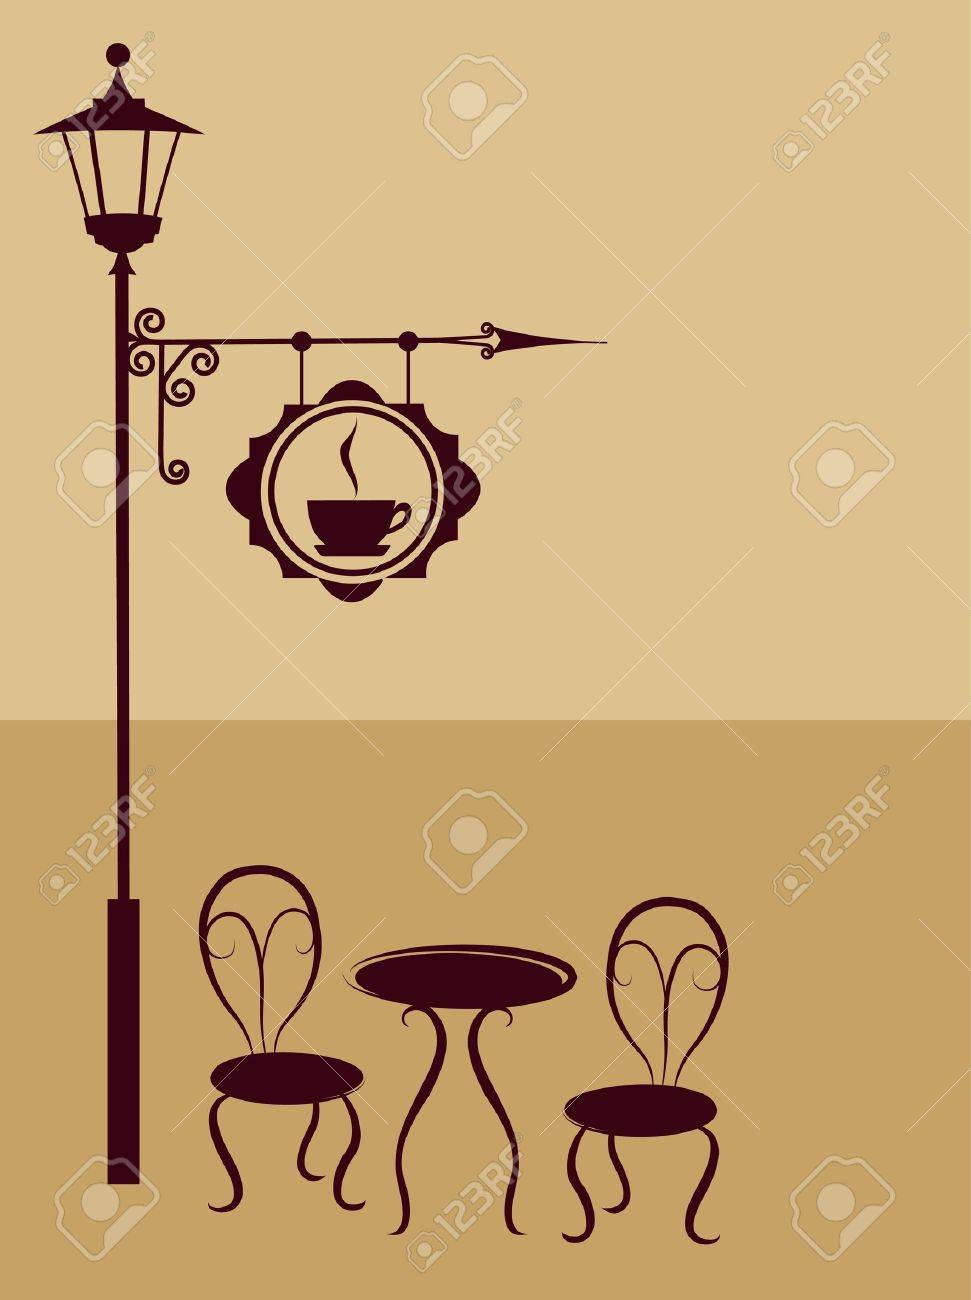 Restaurant tables and chairs clipart - Ancient Coffee Sign Of Restaurant Or Bar With Chairs And Table Stock Vector 9861927